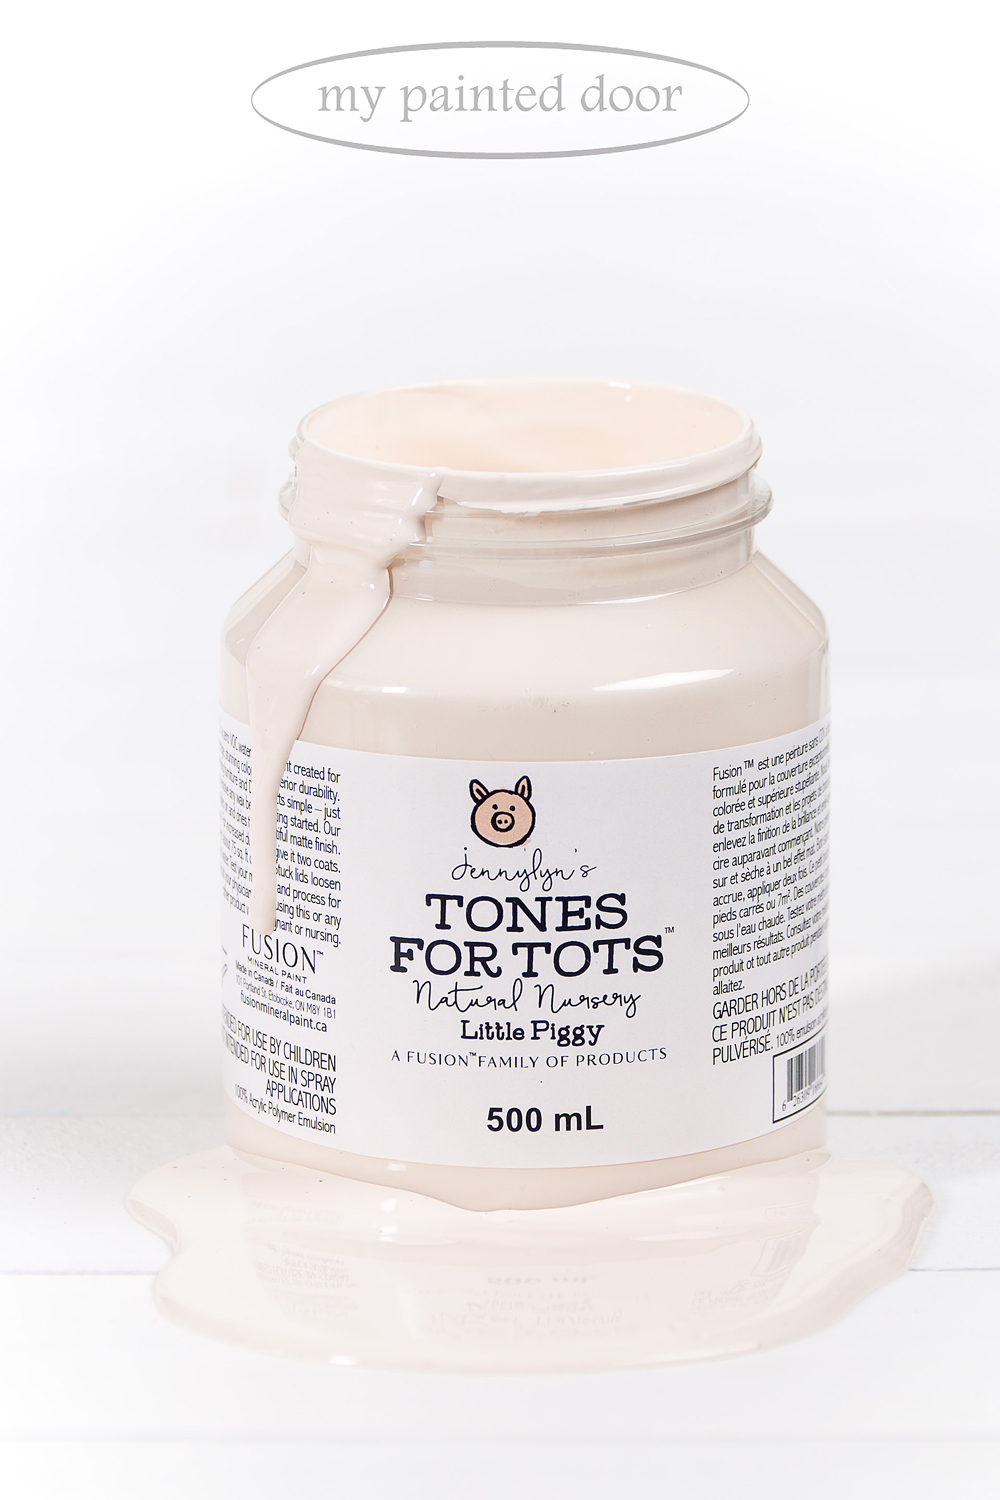 Now available at My Painted Door - Little Piggy from the Jennylyn's Tones for Totes Collection of Fusion Mineral Paint.